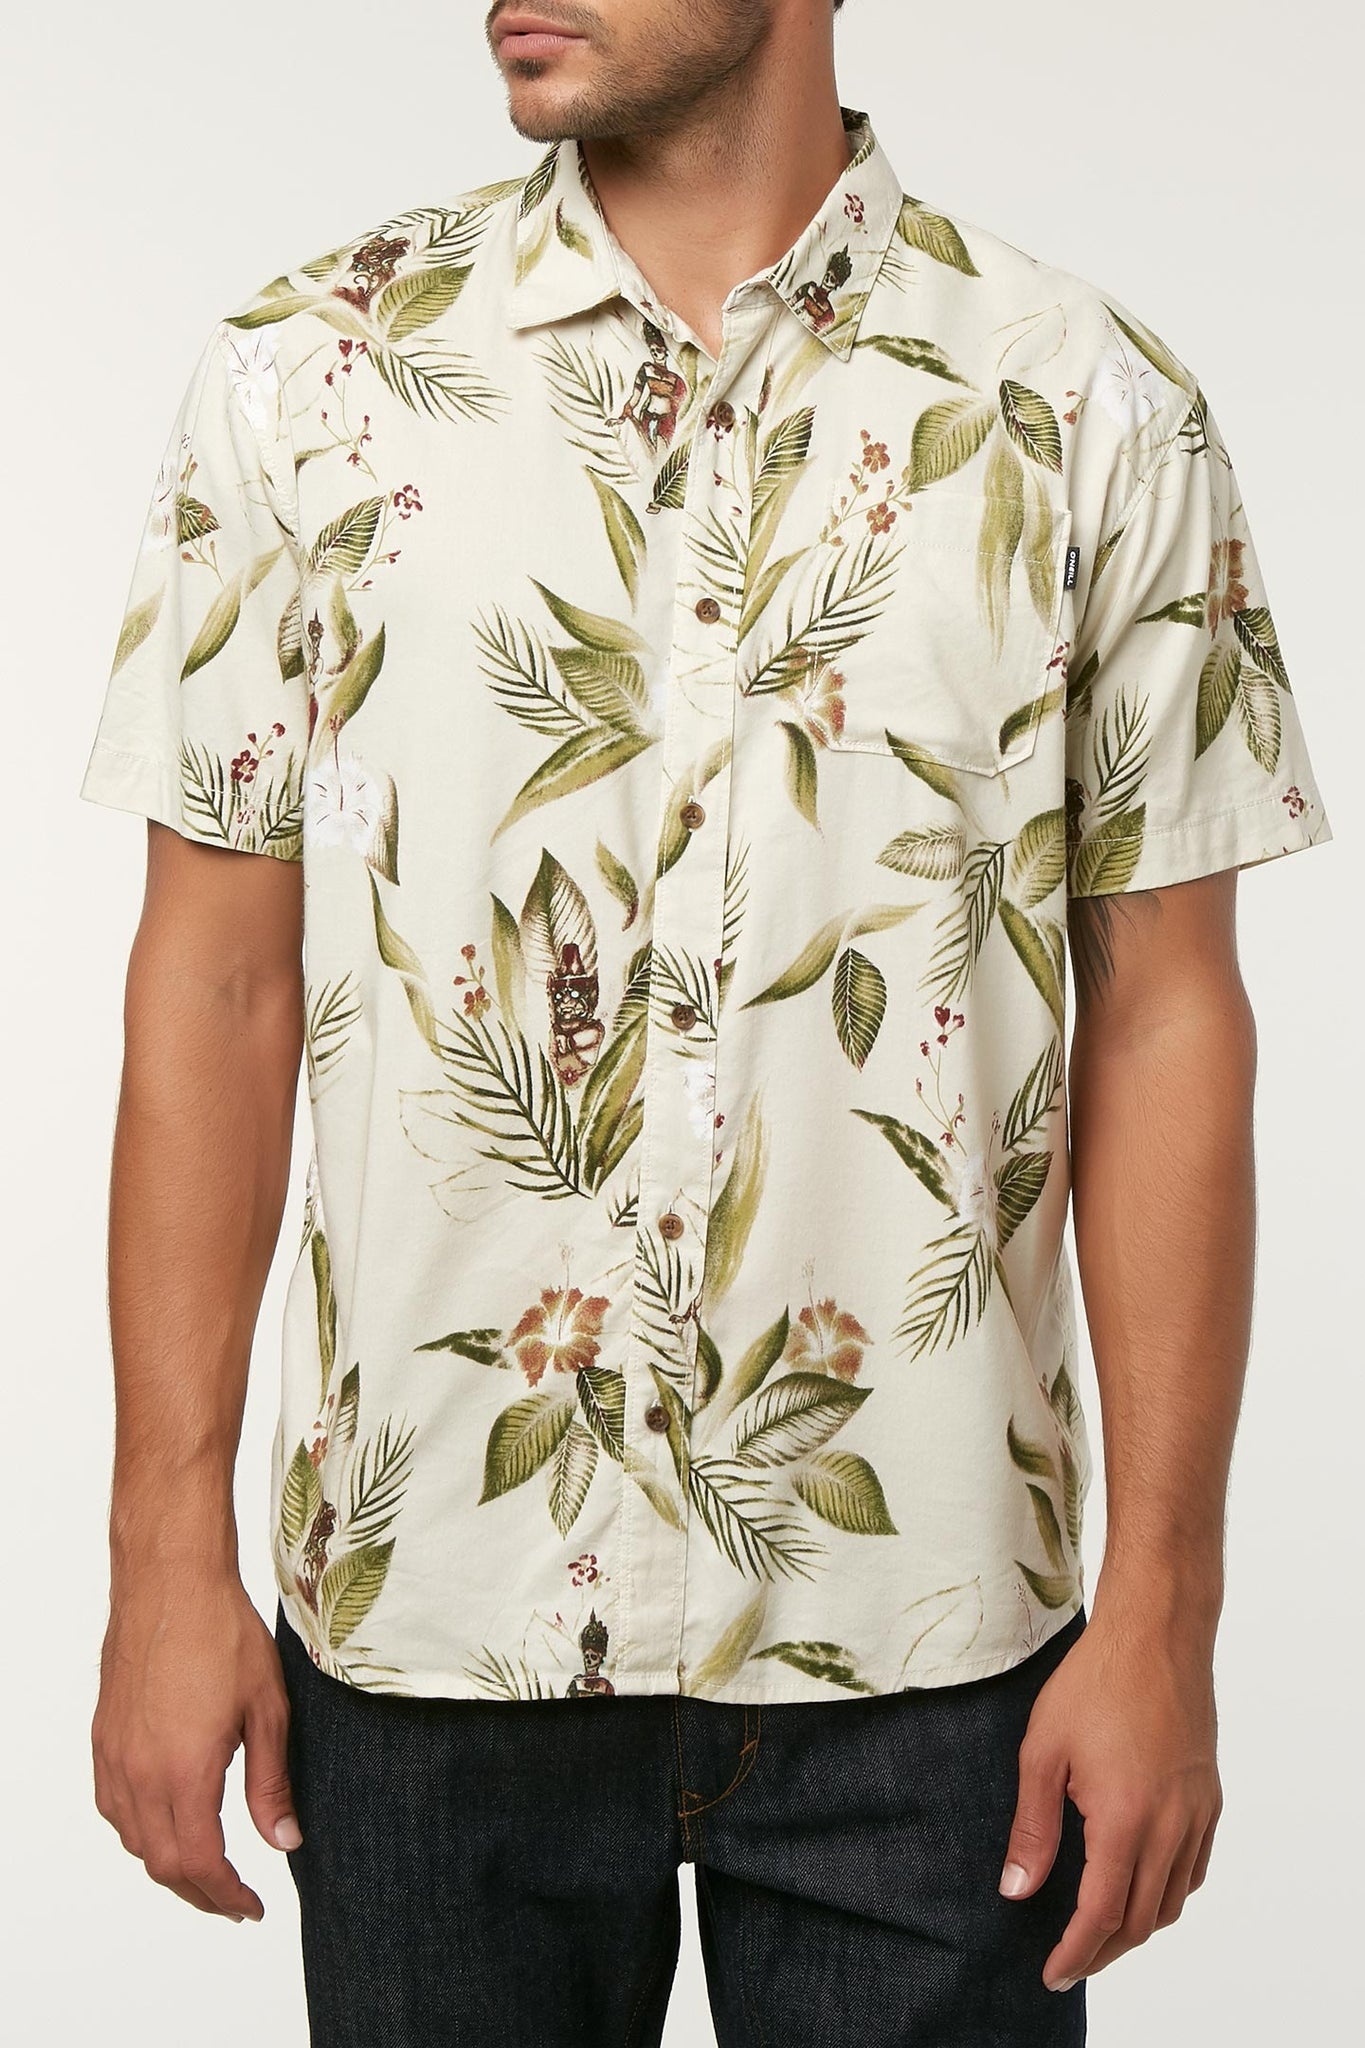 Bali High Shirt | O'Neill Clothing USA